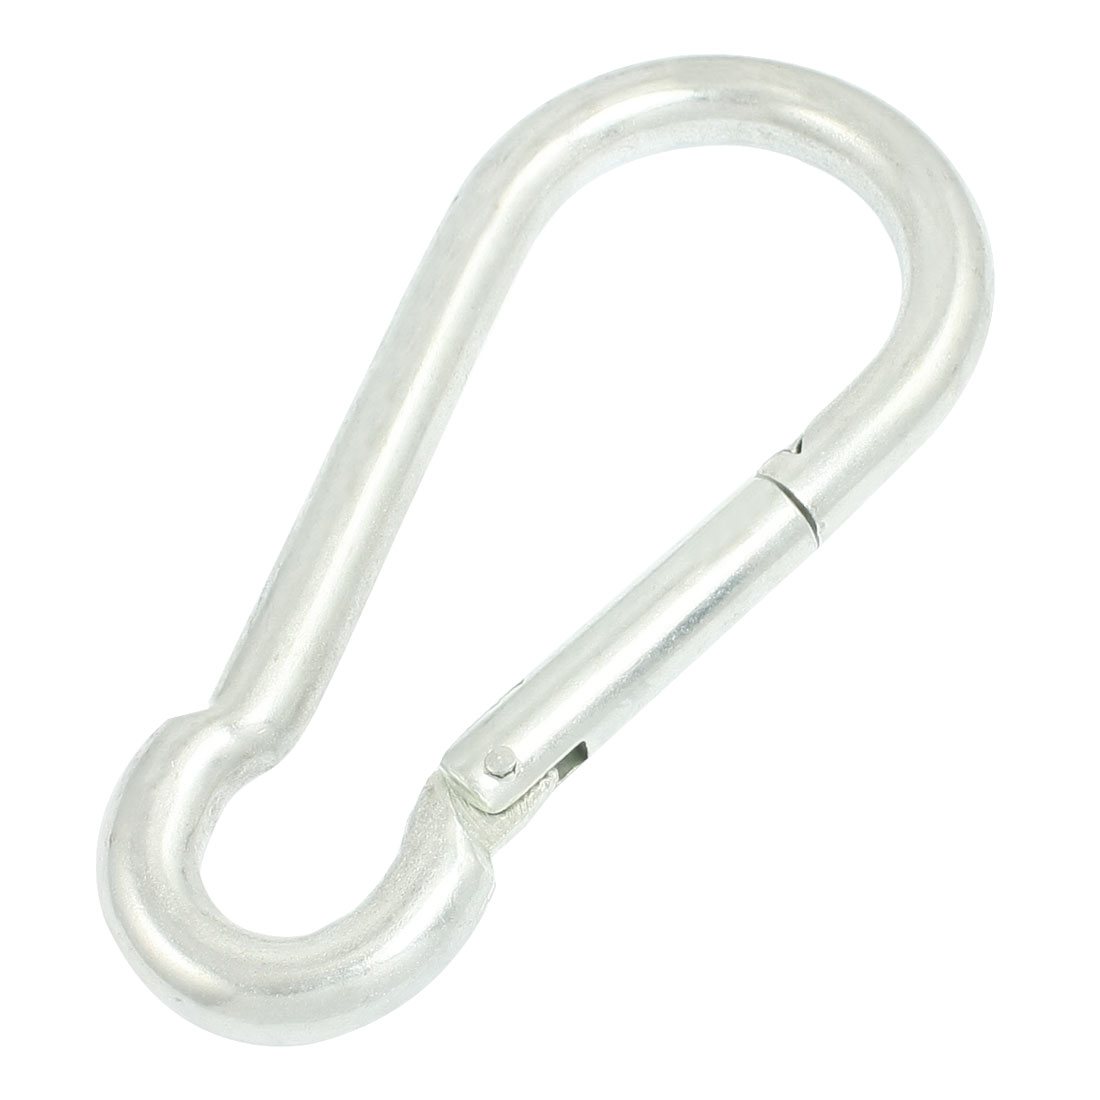 Spring Loaded Gate Lock Silver Tone Metal 14mm Dia Carabiner Hook 7.1""